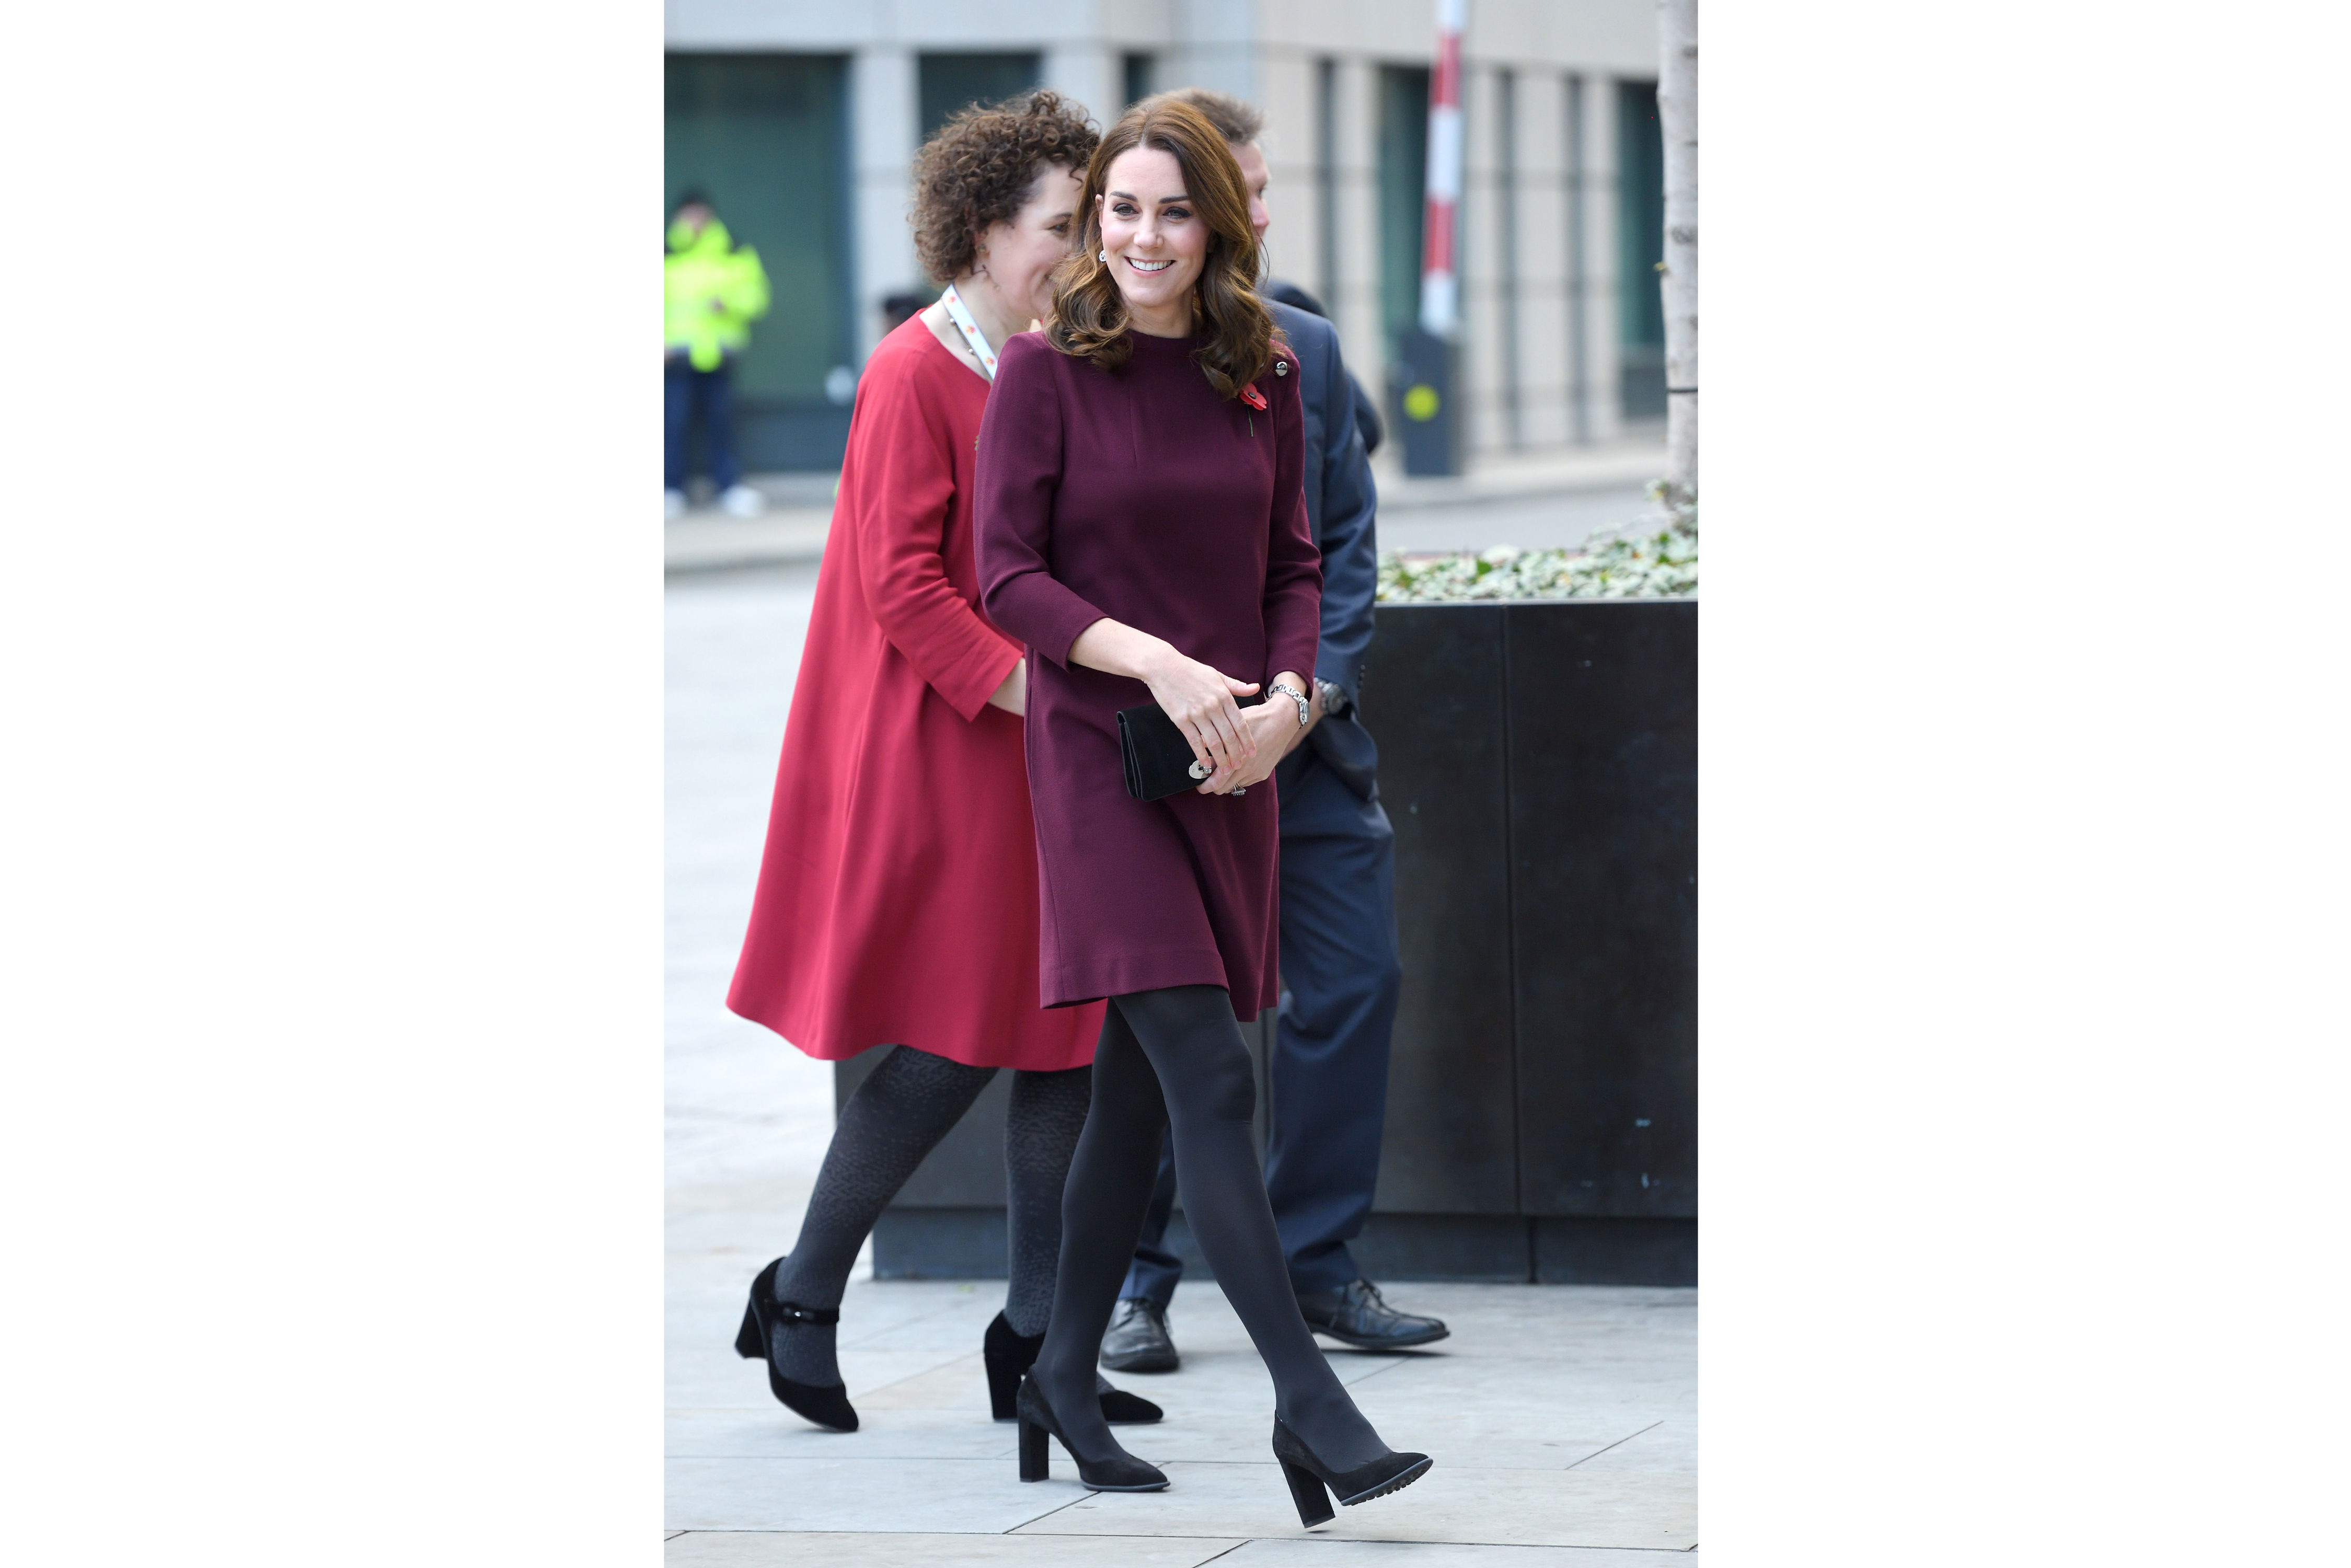 Kate Middleton's Pricey Wine-Colored Tunic Dress Is An Instant Classic, So We Found 4 Affordable Lookalikes